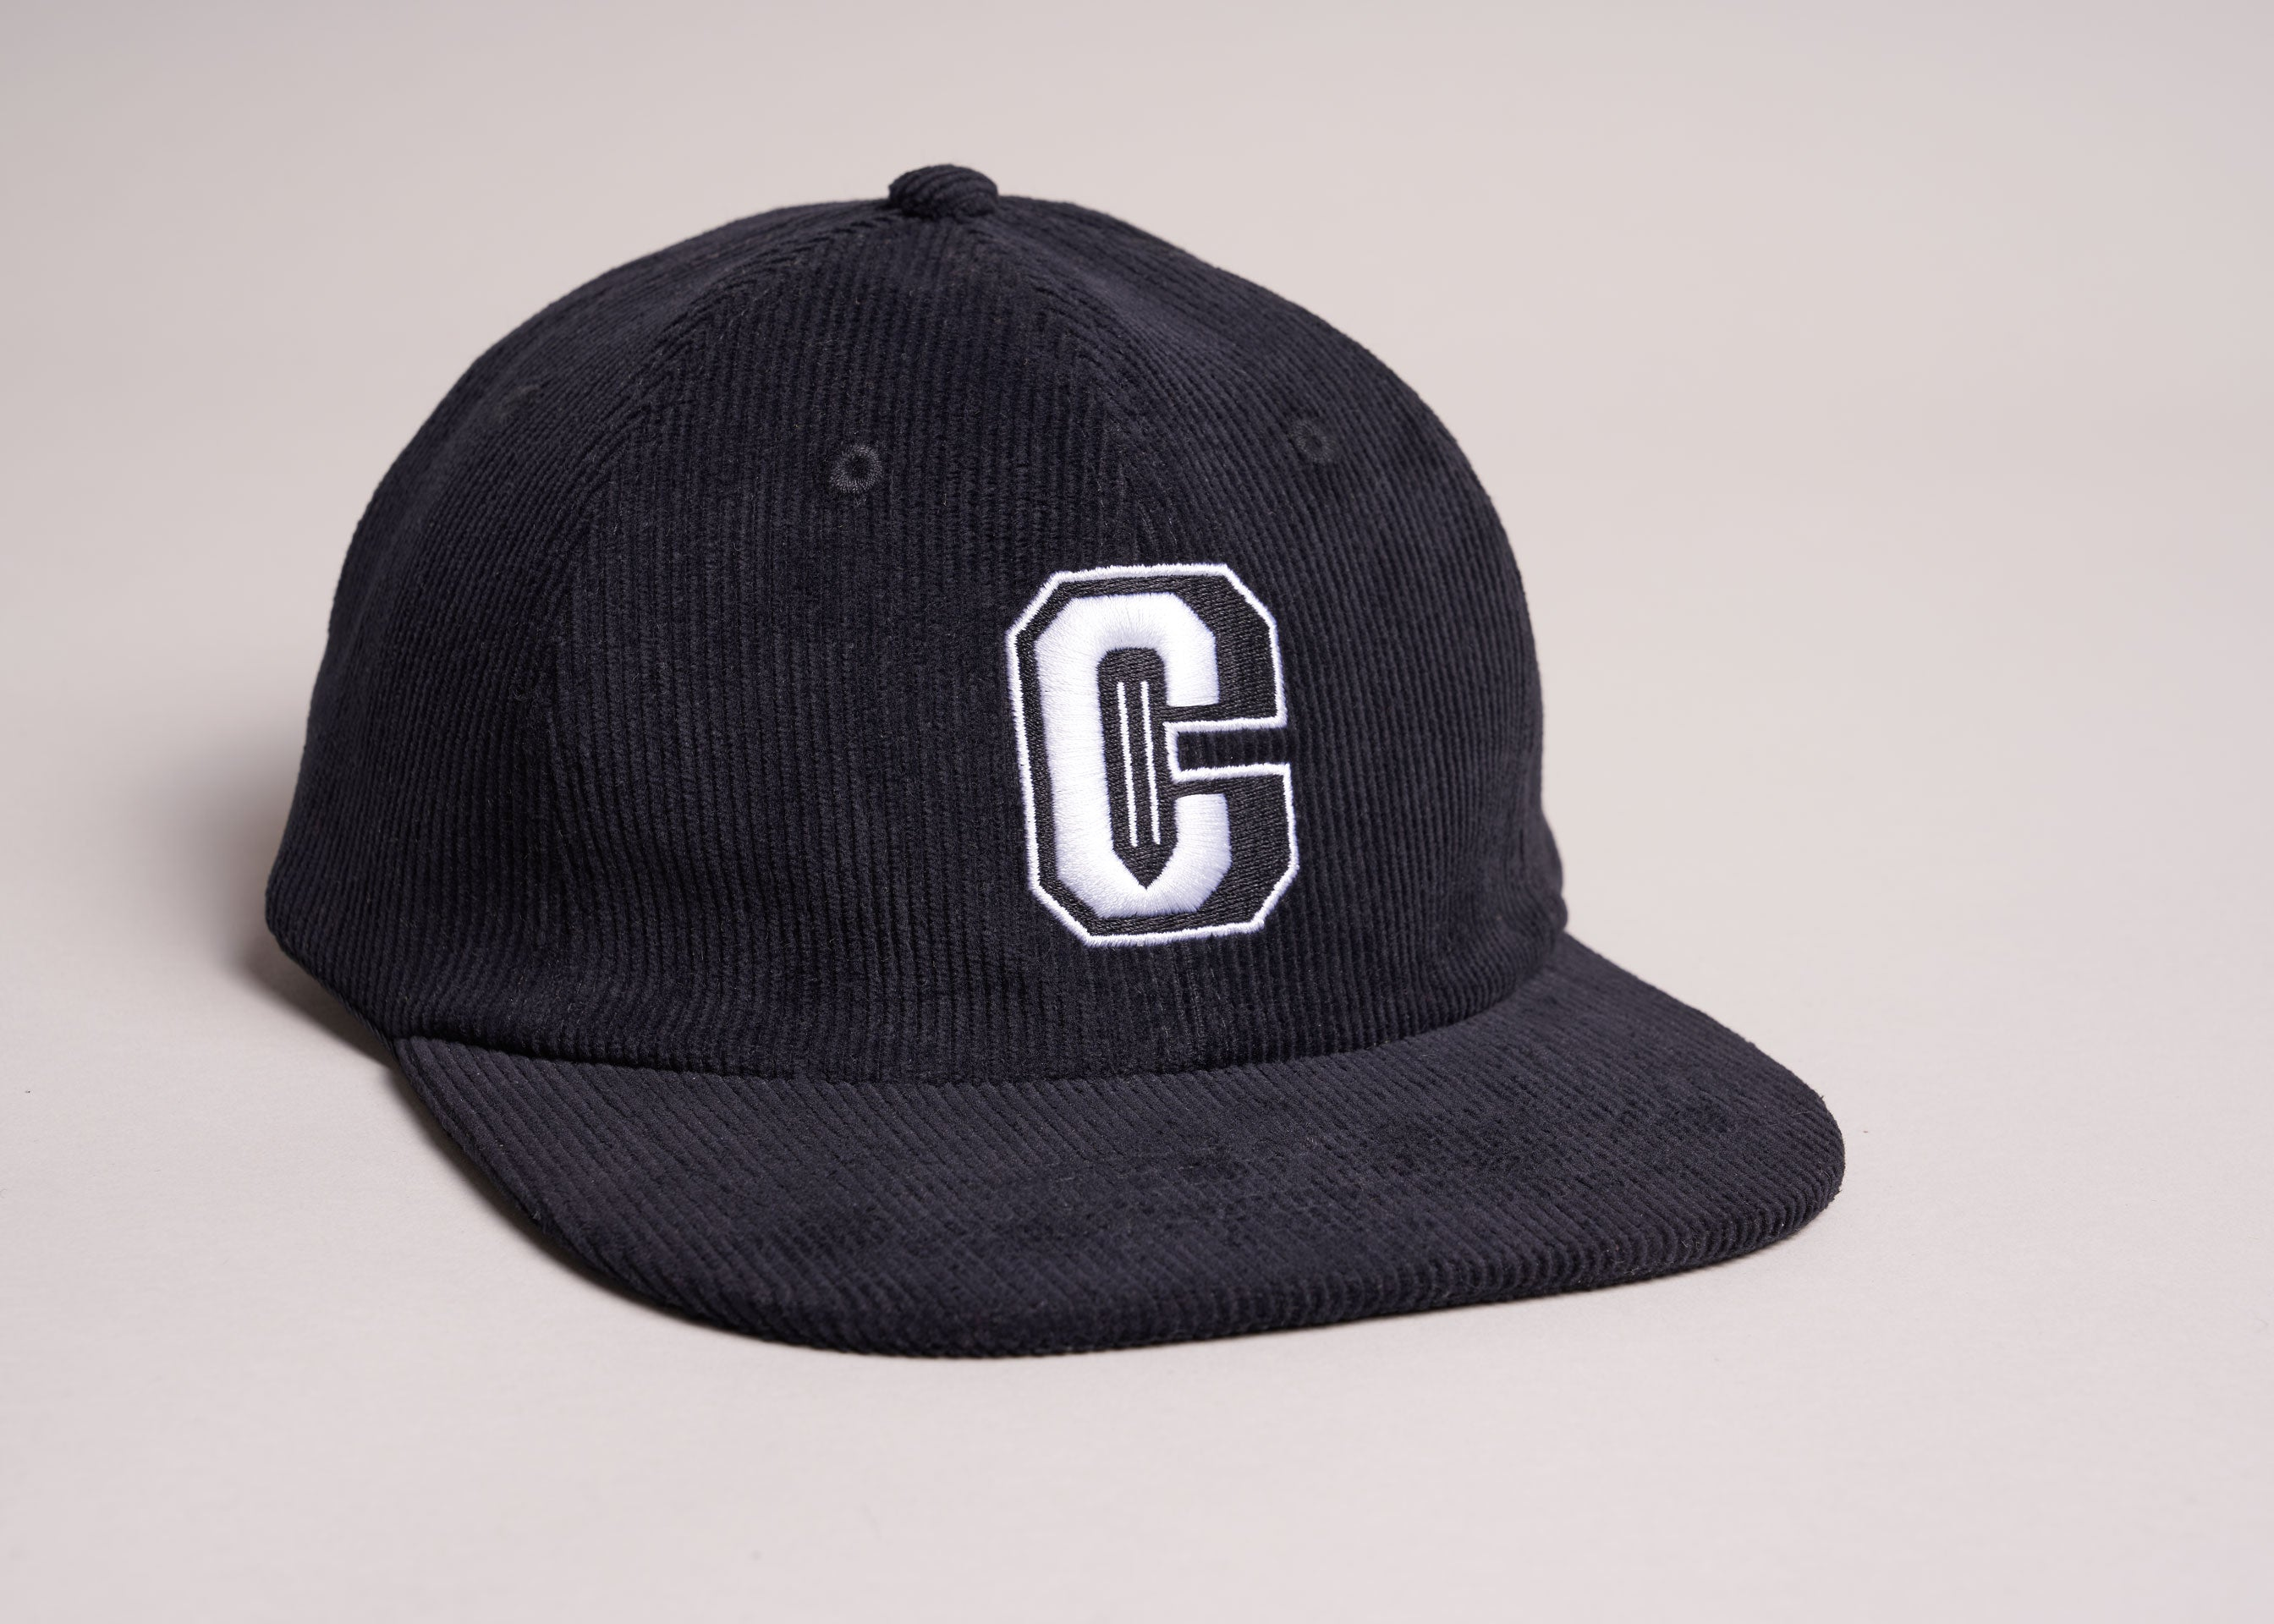 A black unstructured corduroy cap with an embroidered varsity style C Coursework logo.